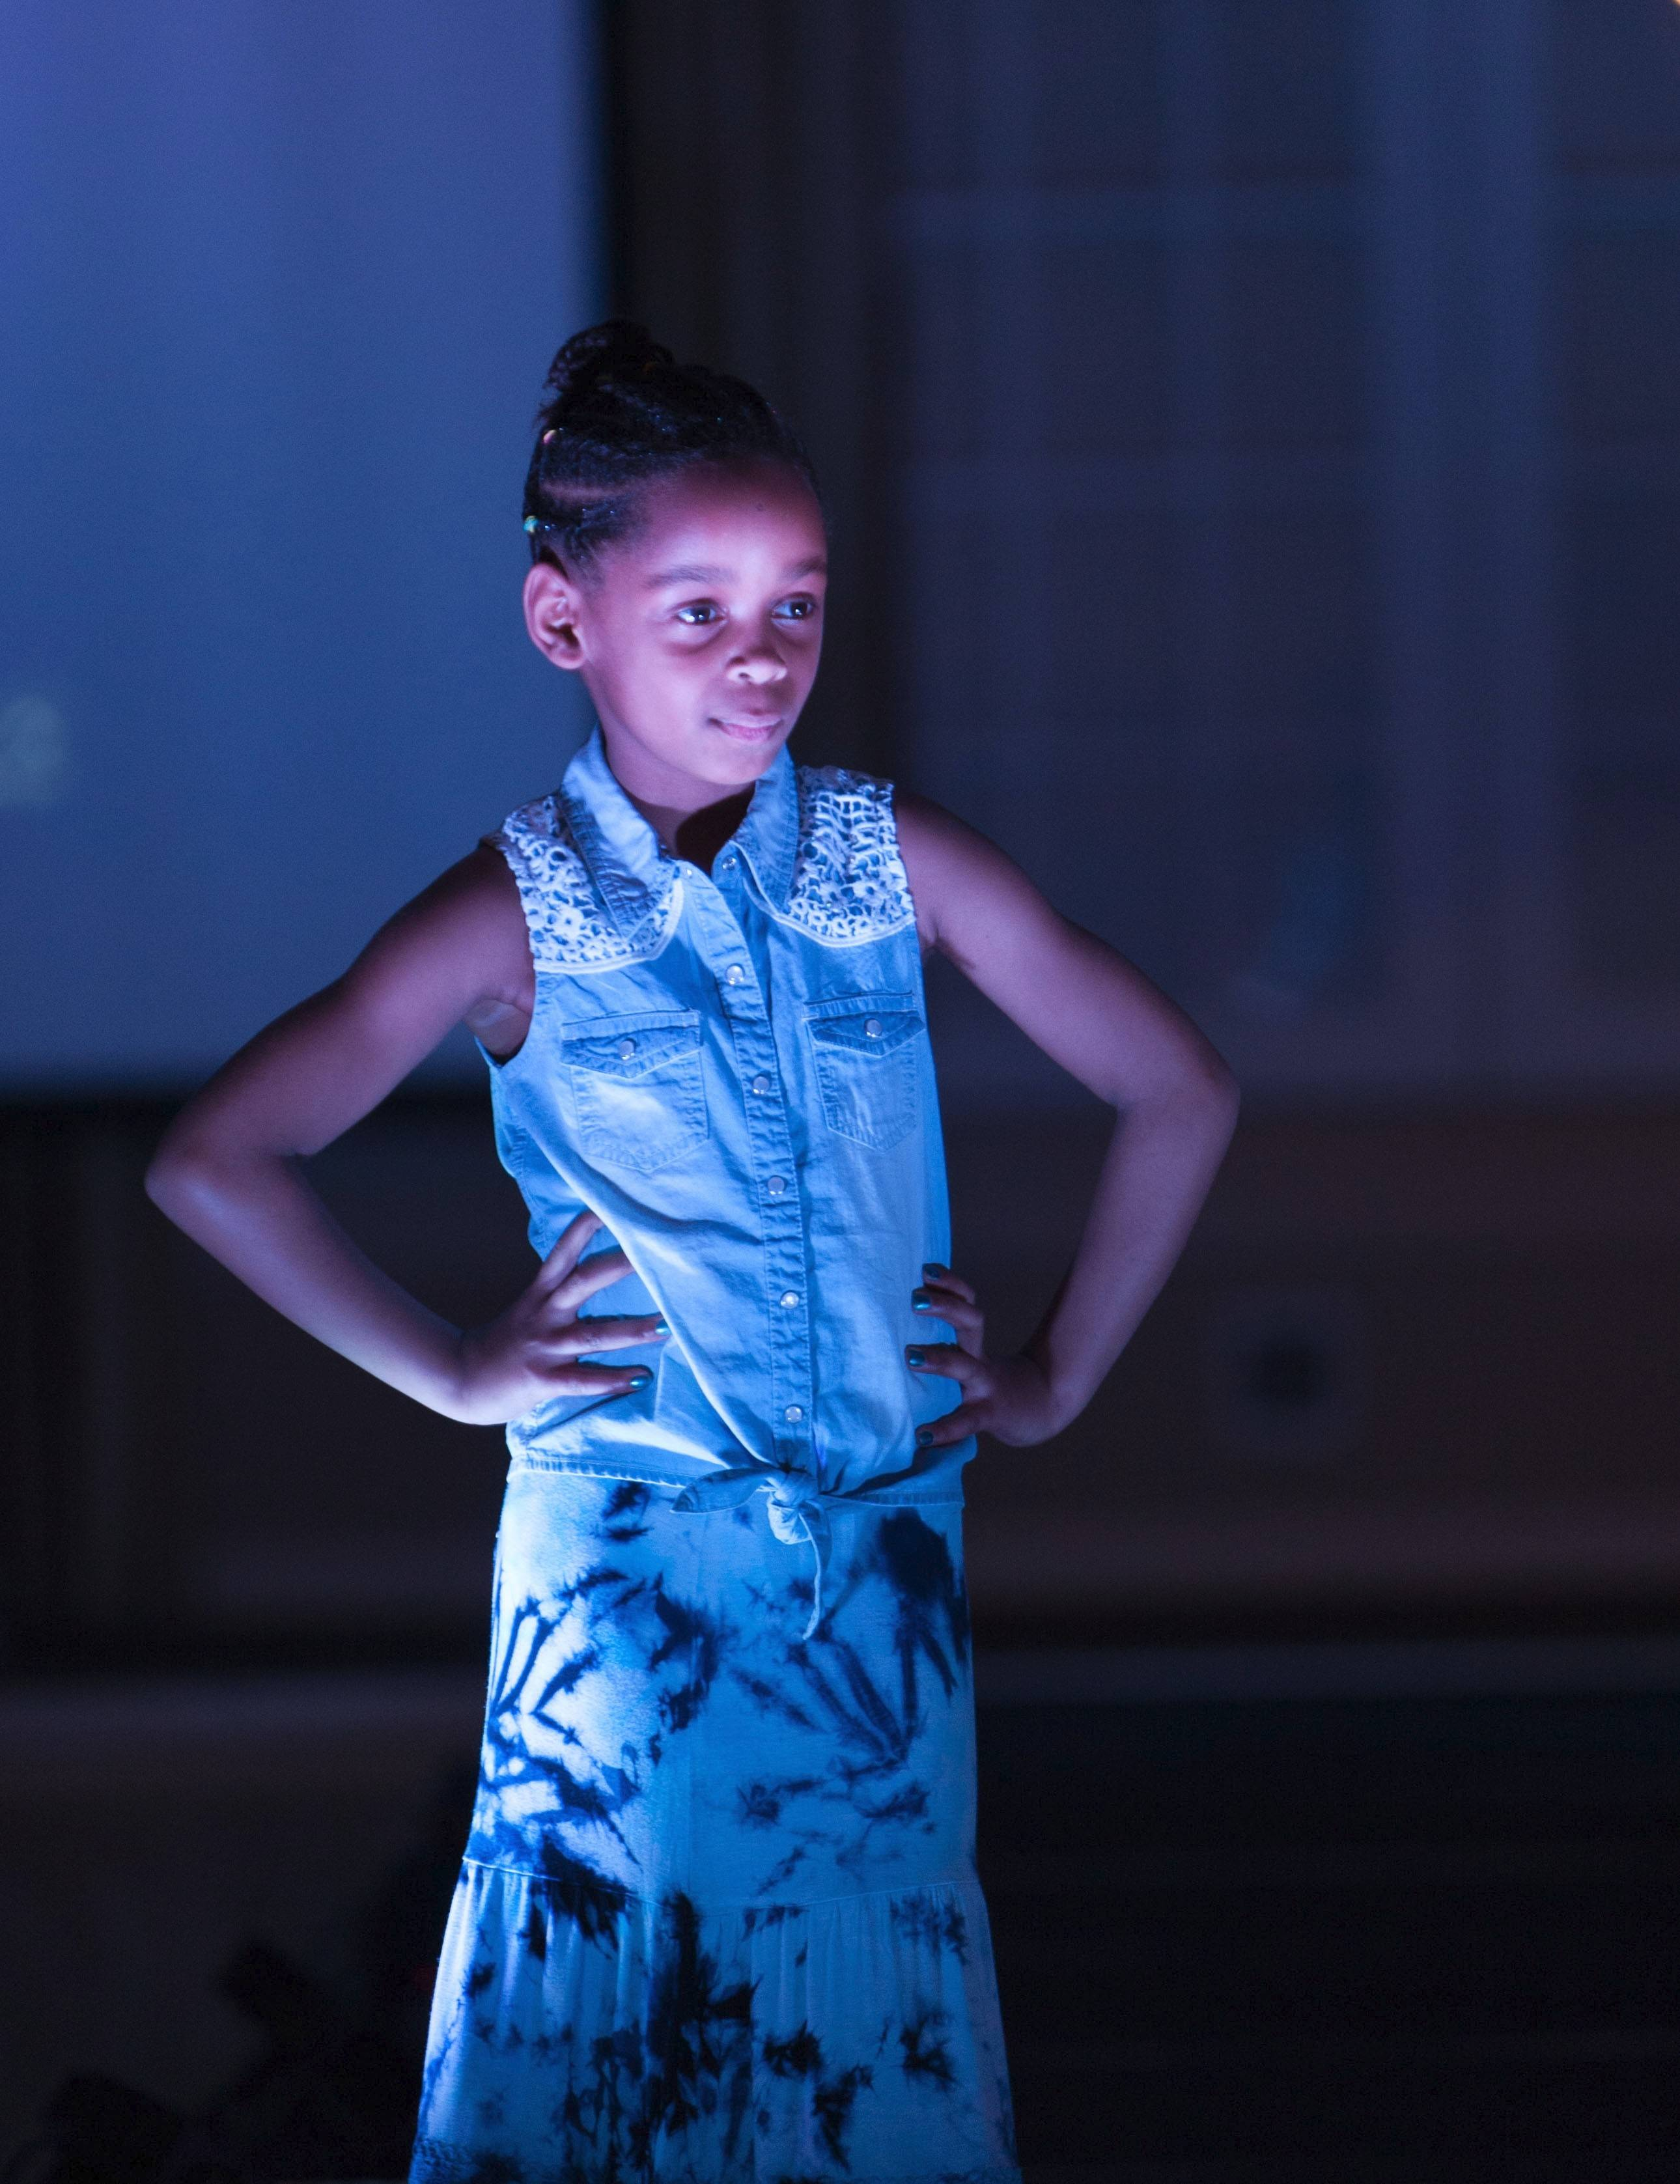 Kayla Hadfield, 7, daughter of Christopher and Eileen Hadfield of Algonquin, takes the stage at St. Mary's Services' fundraiser fashion show.